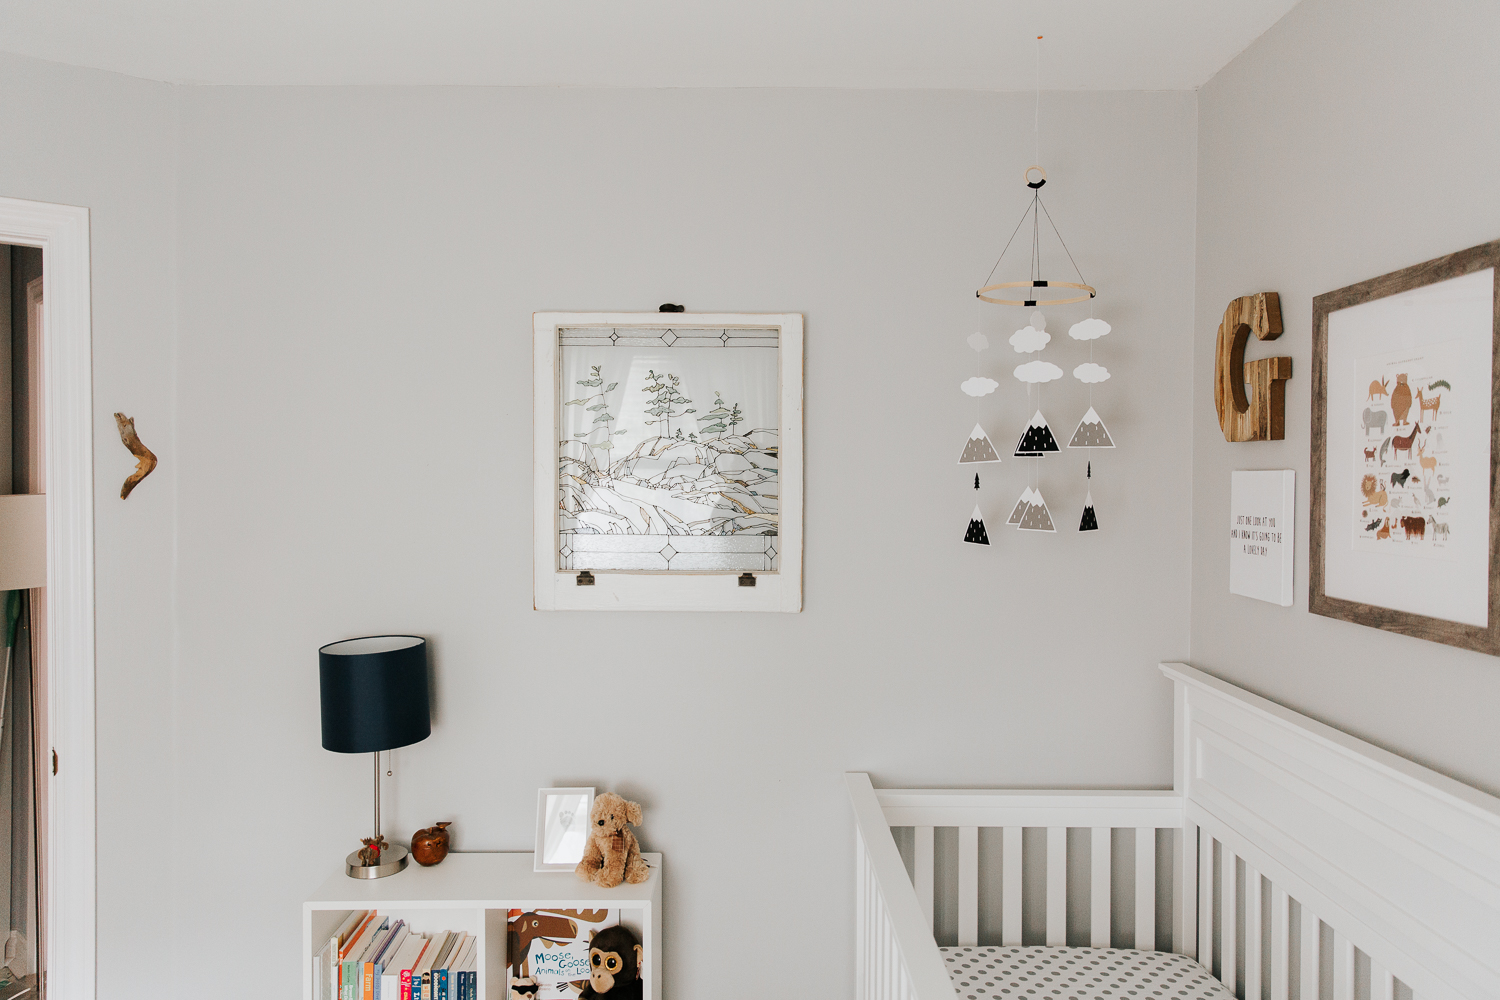 woodland nursery details, grey walls, white crib with a gallery wall, mountain mobile and stained glass window - Markham Lifestyle Photography